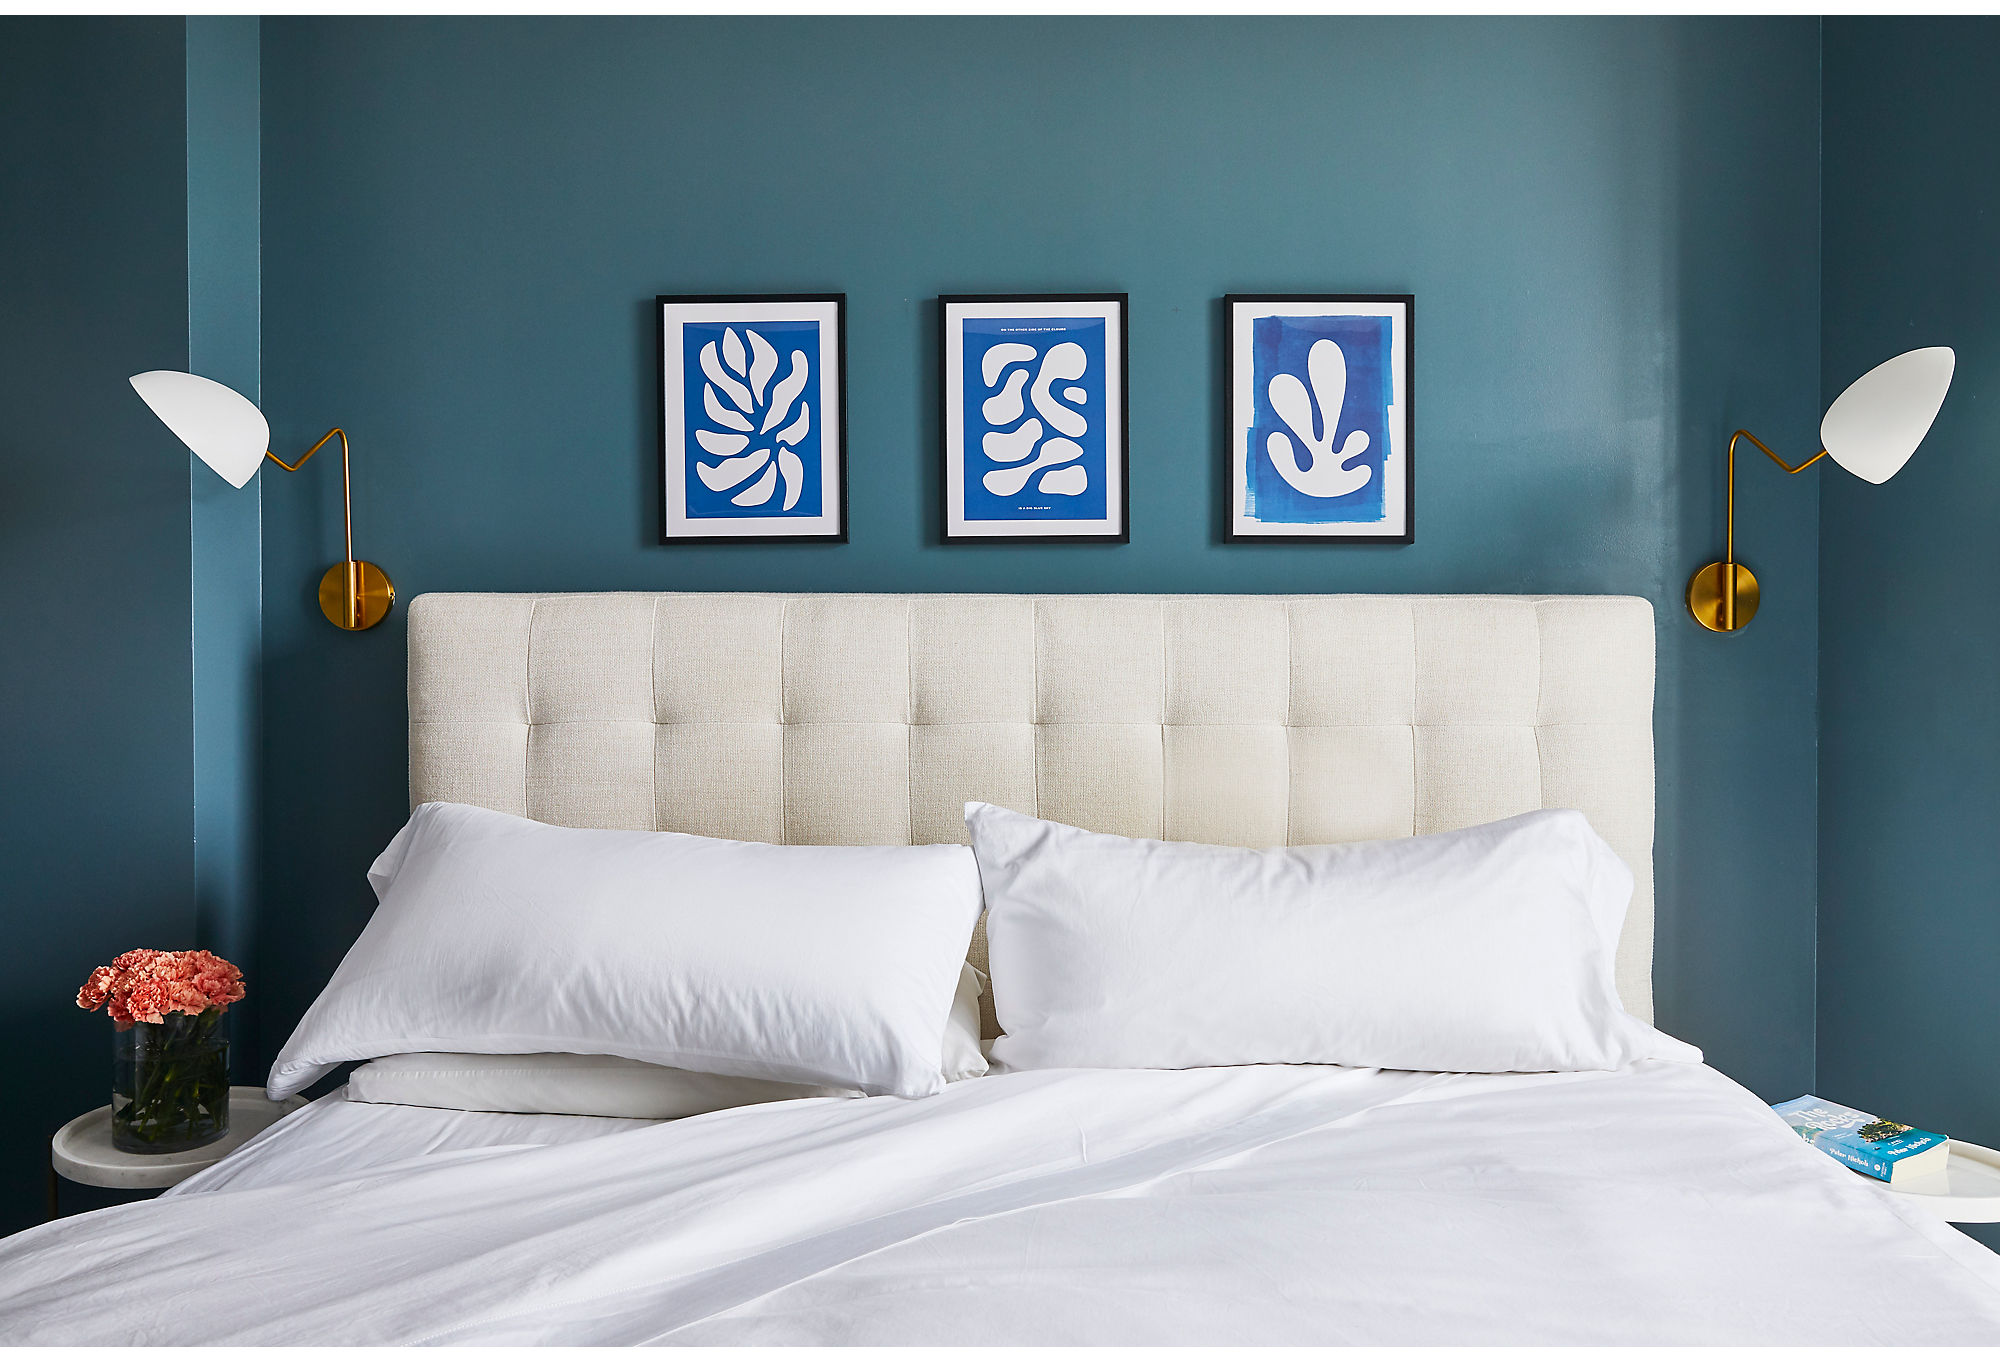 A tufted headboard (see a similarbed here)and crisp white linenscreate a serene place for the couple, who work high-stress jobs, to lay their heads. Streamlined sconces flank the bed, allowing the trio of Matisse prints tobe the star of the show.